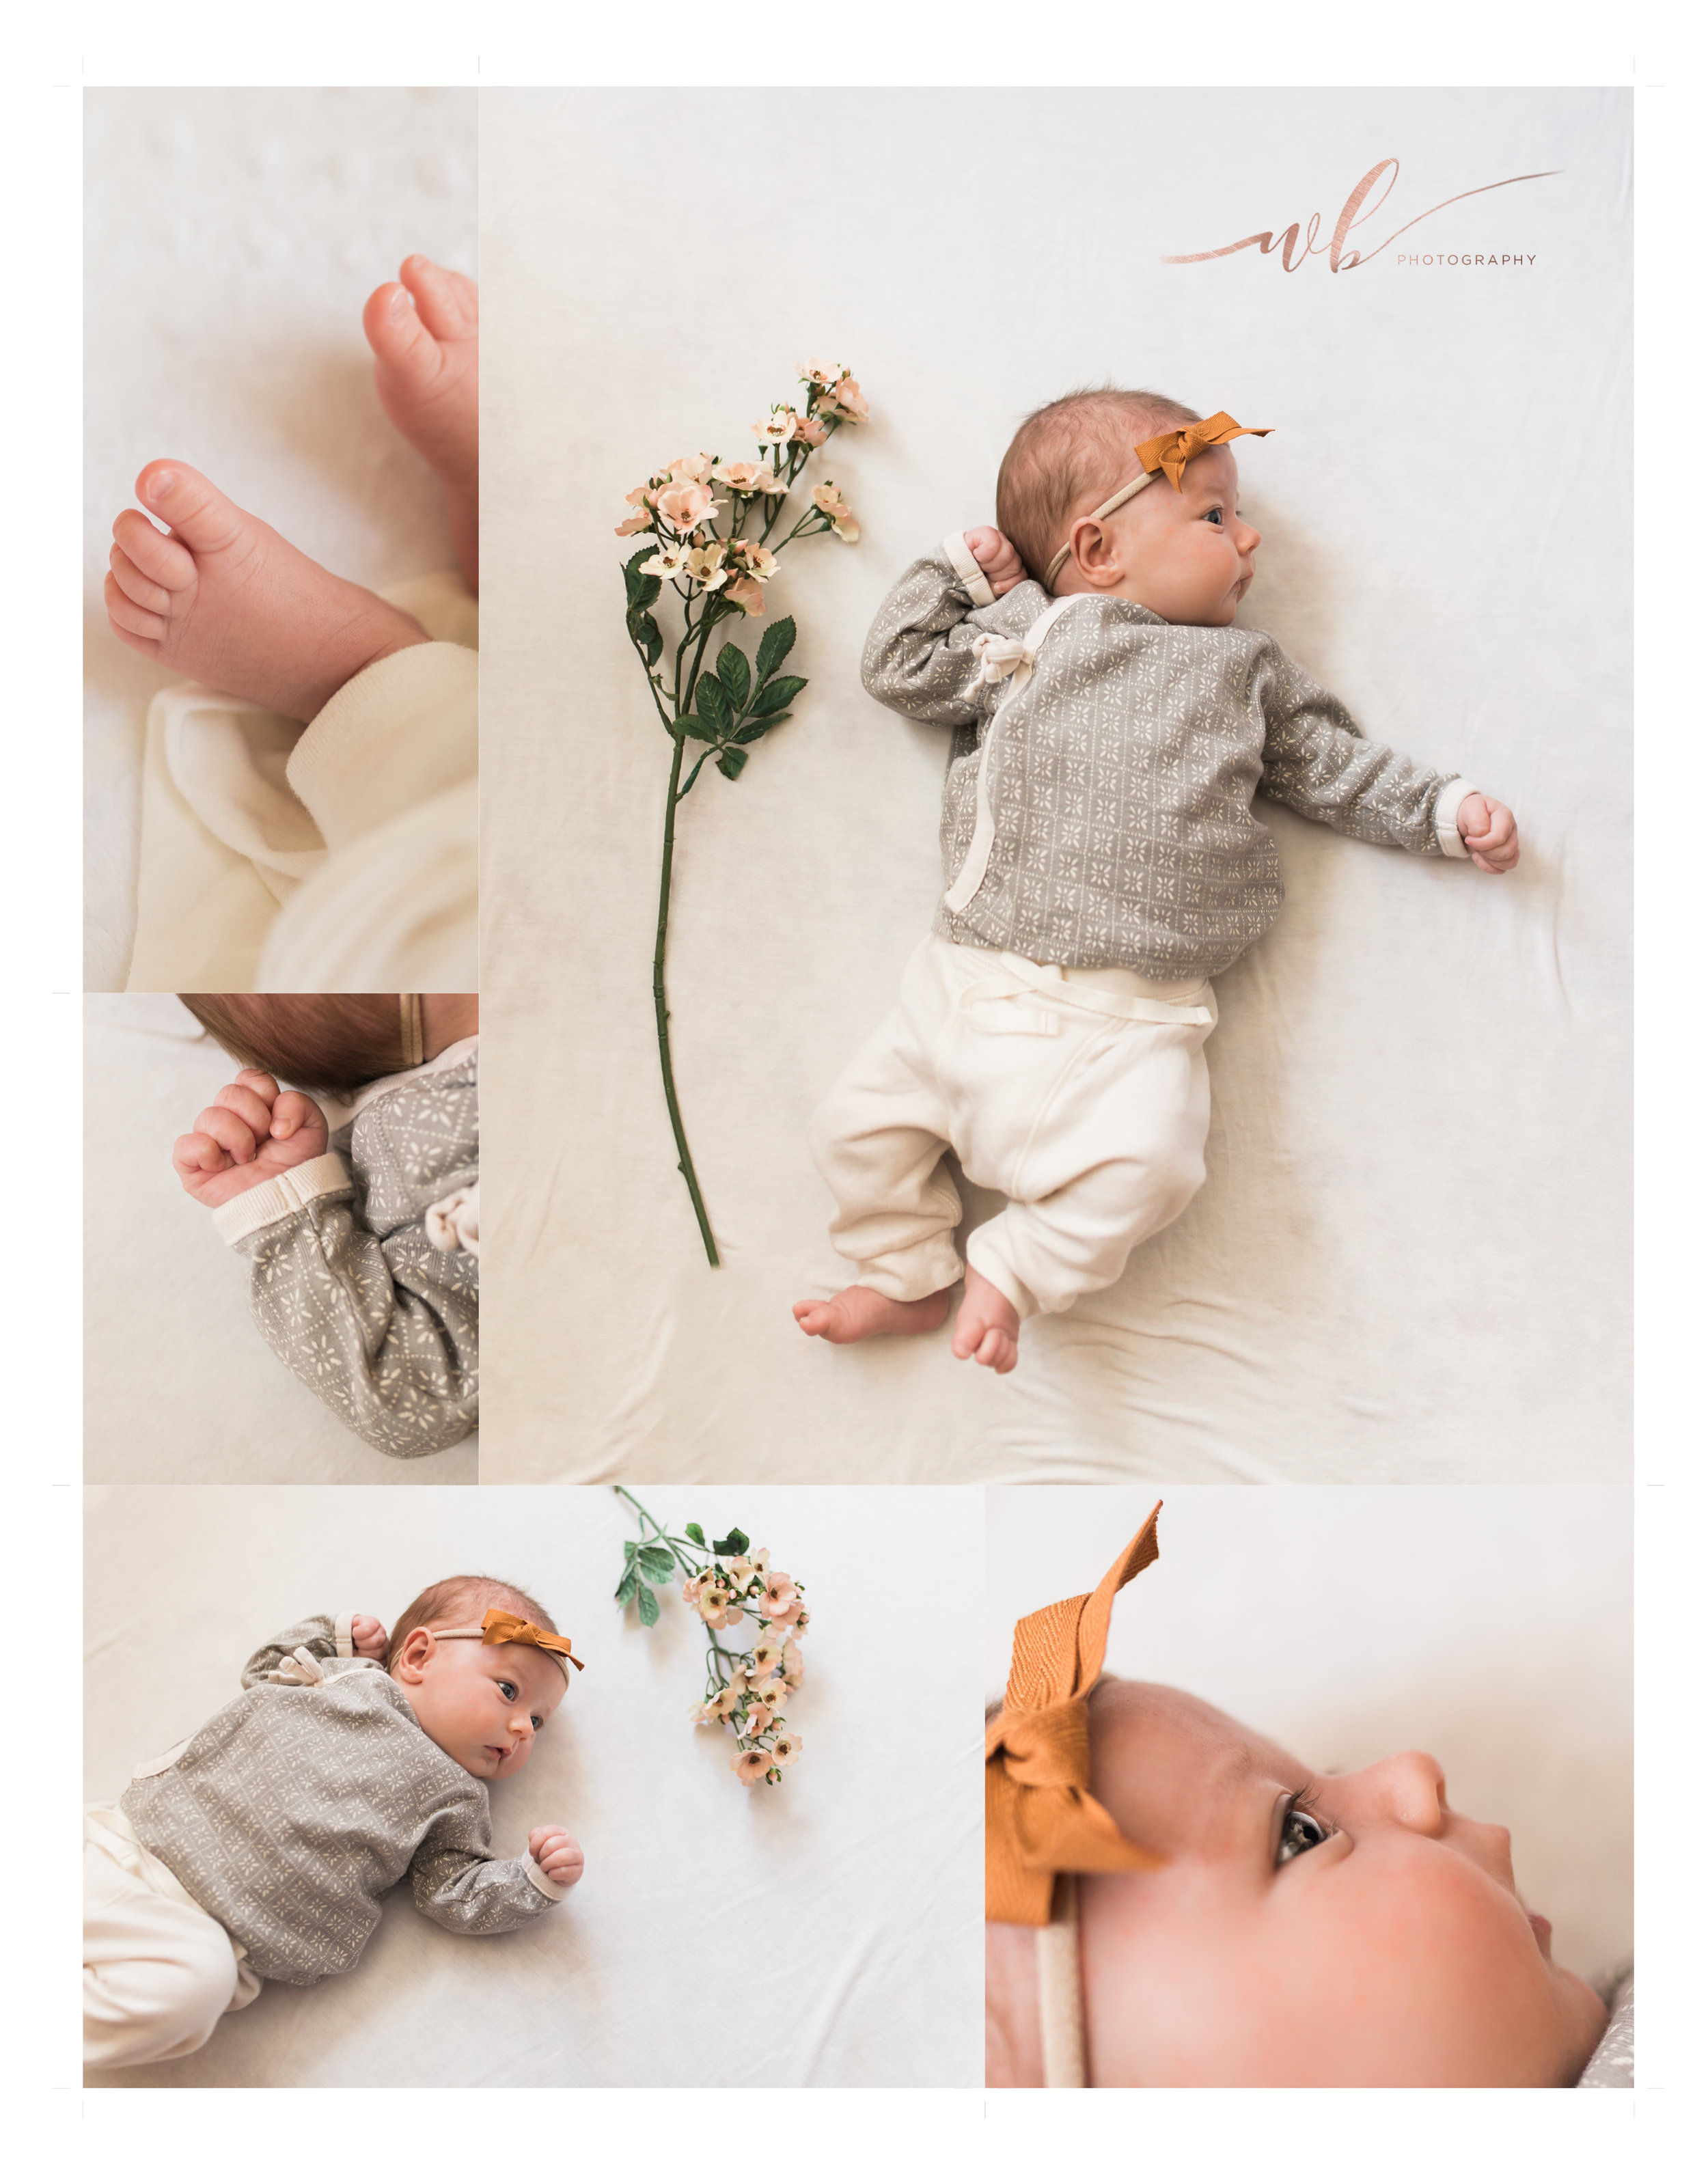 Lifestyle newborn photographer in Utah County